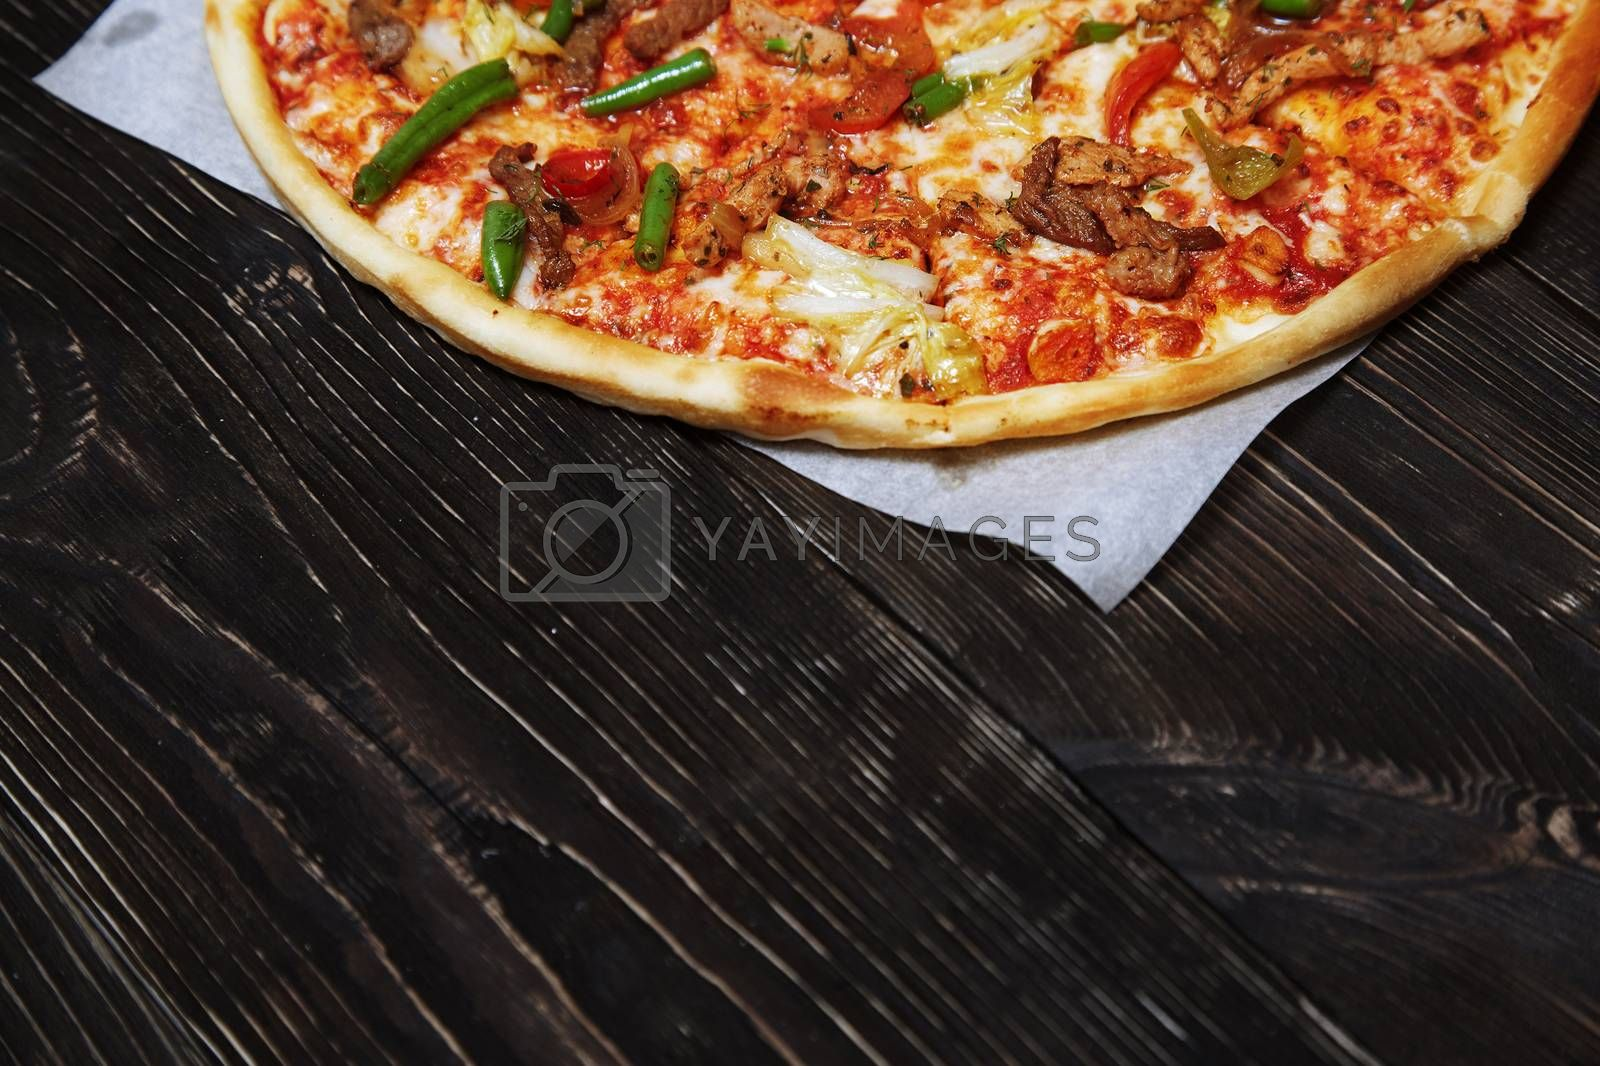 Part of homemade pizza on a wooden table